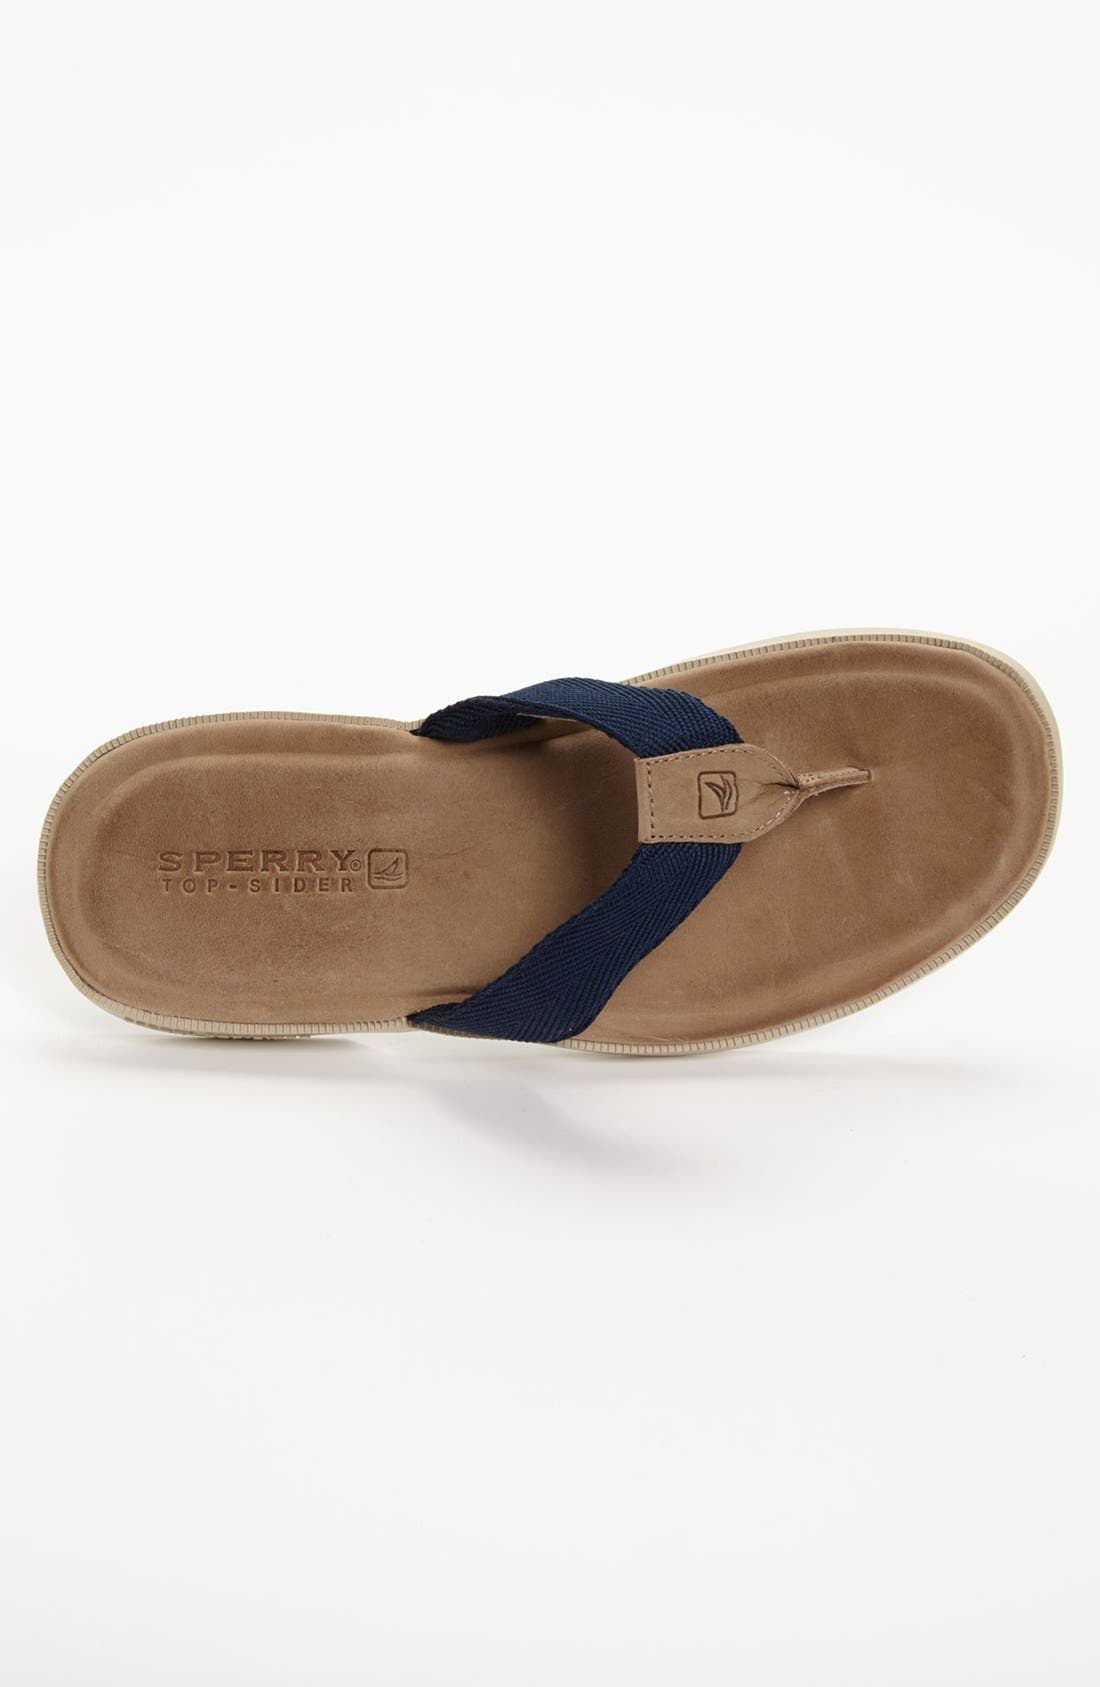 Alternate Image 3  - Sperry Top-Sider® 'Harrison' Flip Flop (Men)